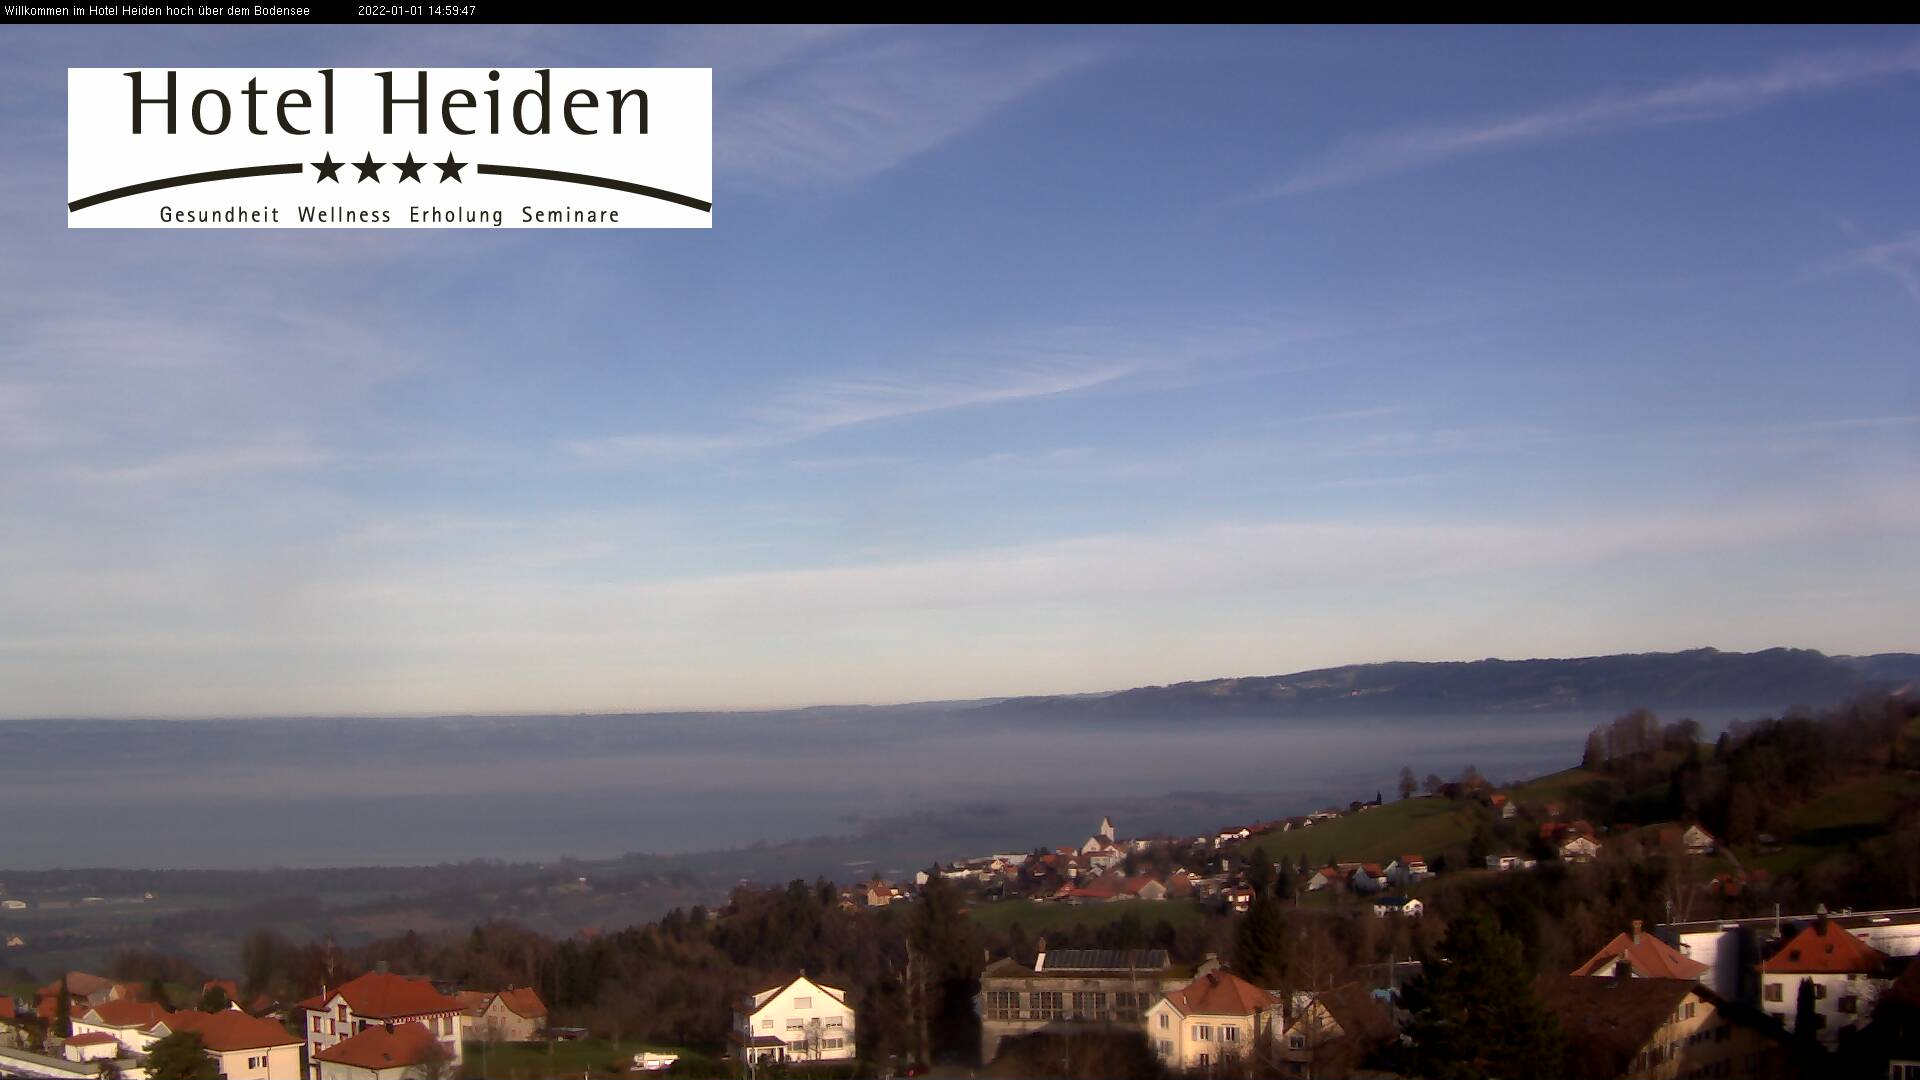 Webcam Ludwigsburg Https://www.hotelheiden.ch/en/webcam.html